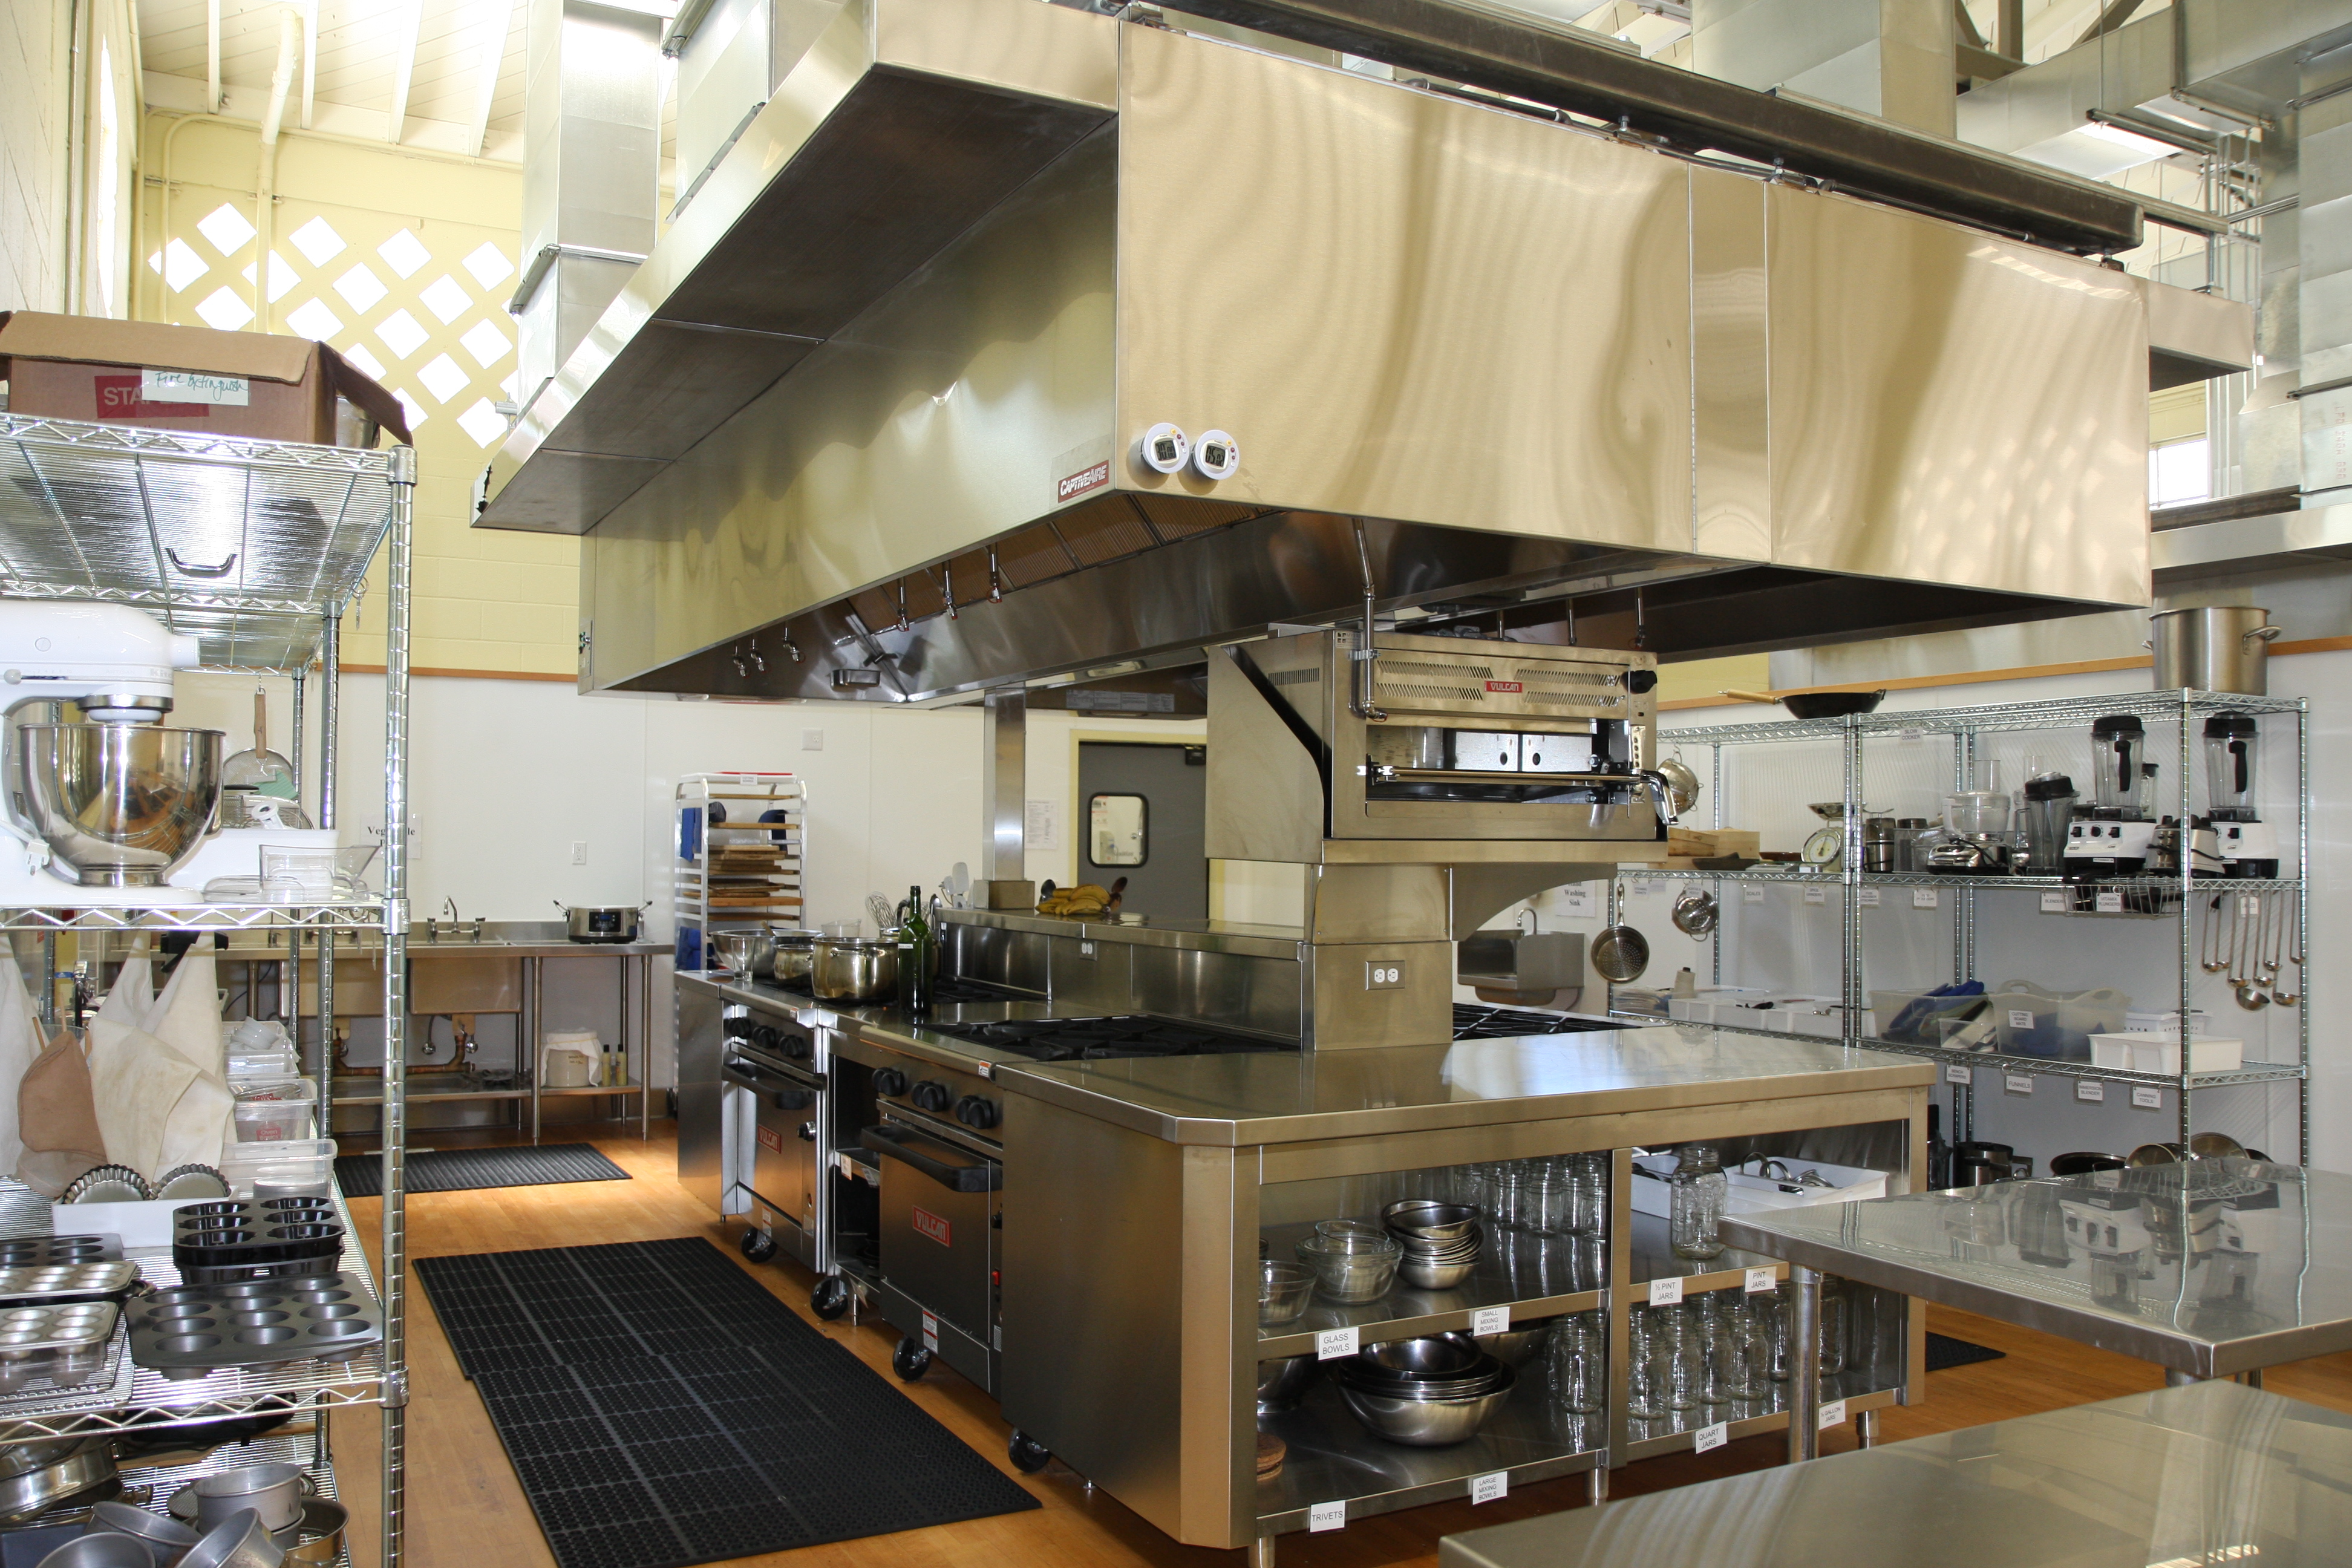 Delightful ... State Of The Art Kitchens. Visit The Bauman College Official Website To  Learn About All Of Our Wonderful Locations.